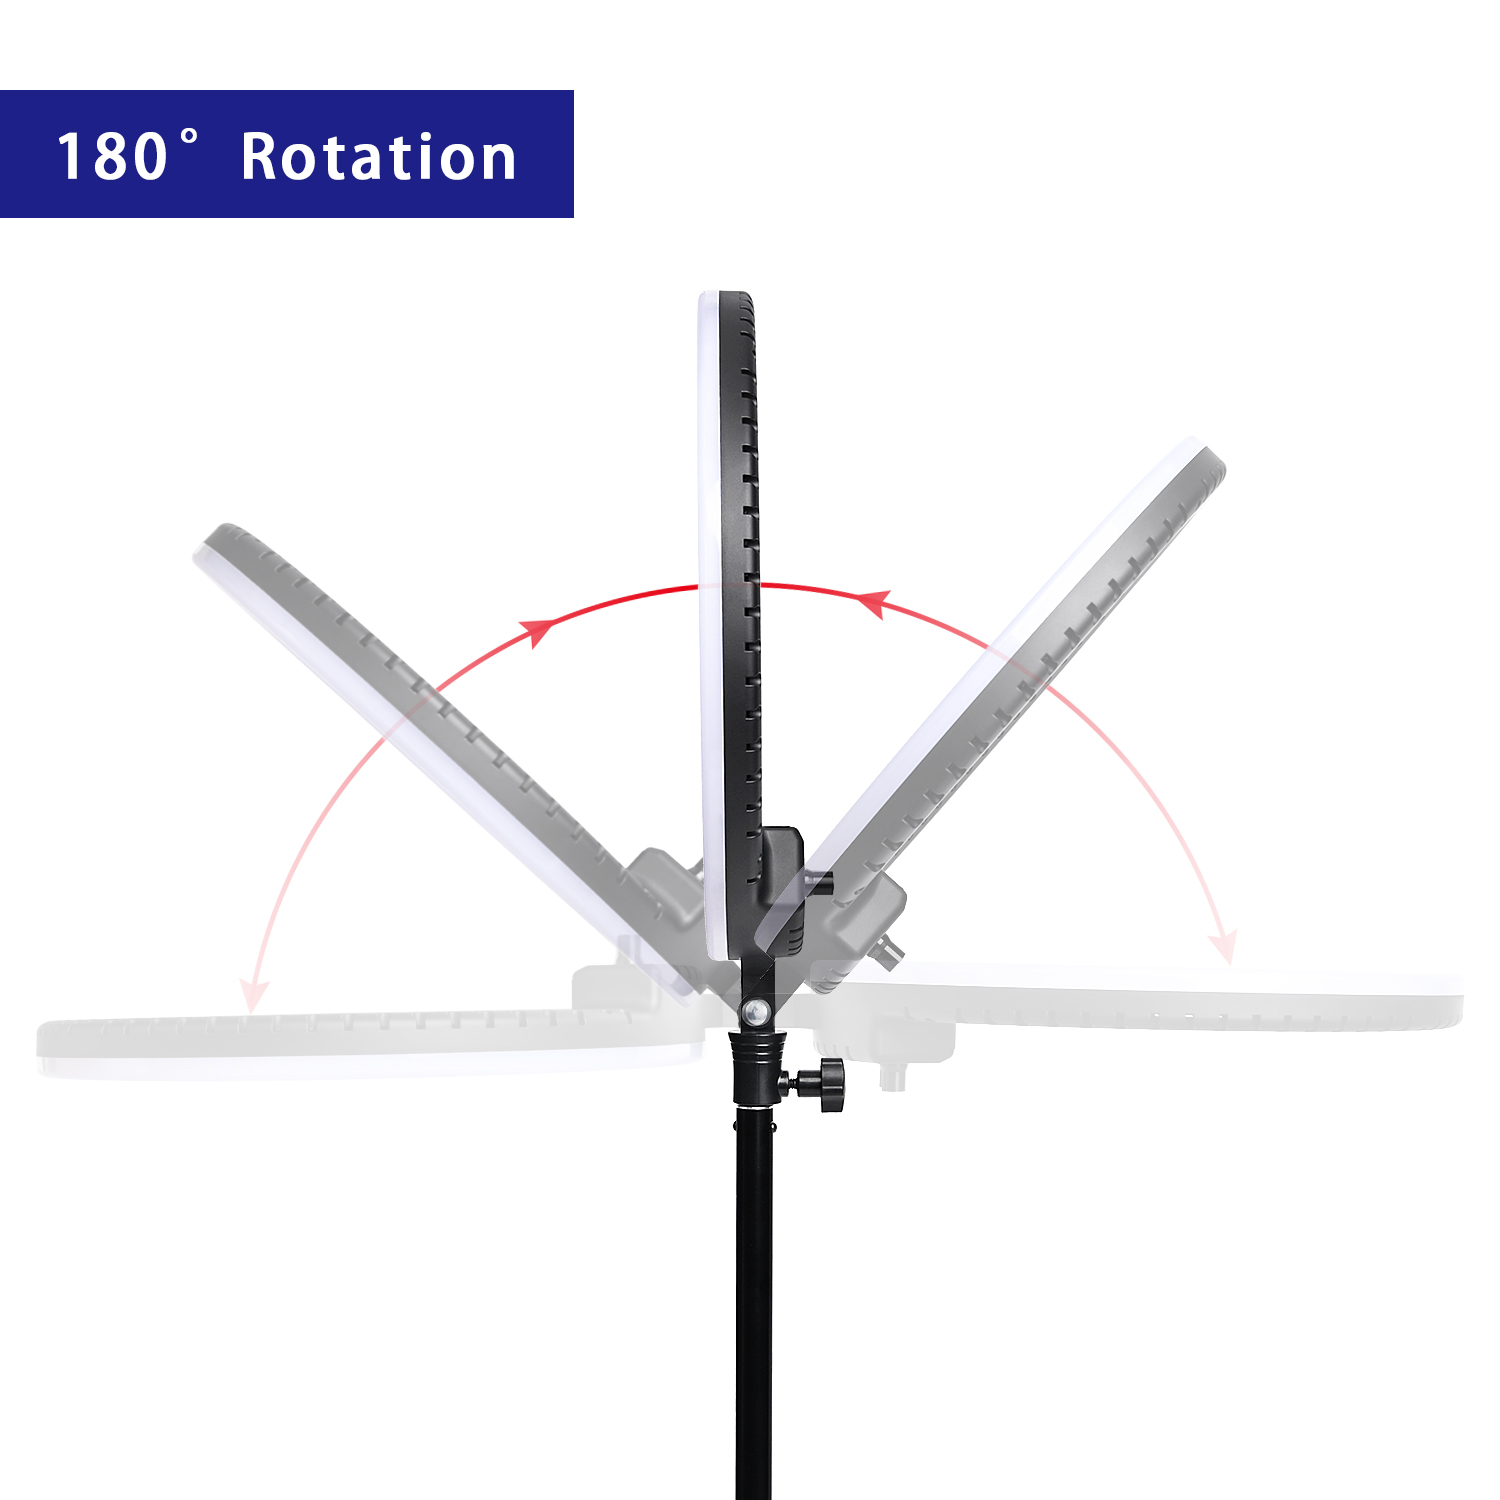 H35cbfe1dd64c46d4b30168dea362c9f5W fosoto LED Ring Light Selfie Photo Photography Lighting Ringlight lamp With Tripod Stand For Photo Studio Makeup Video Live Show